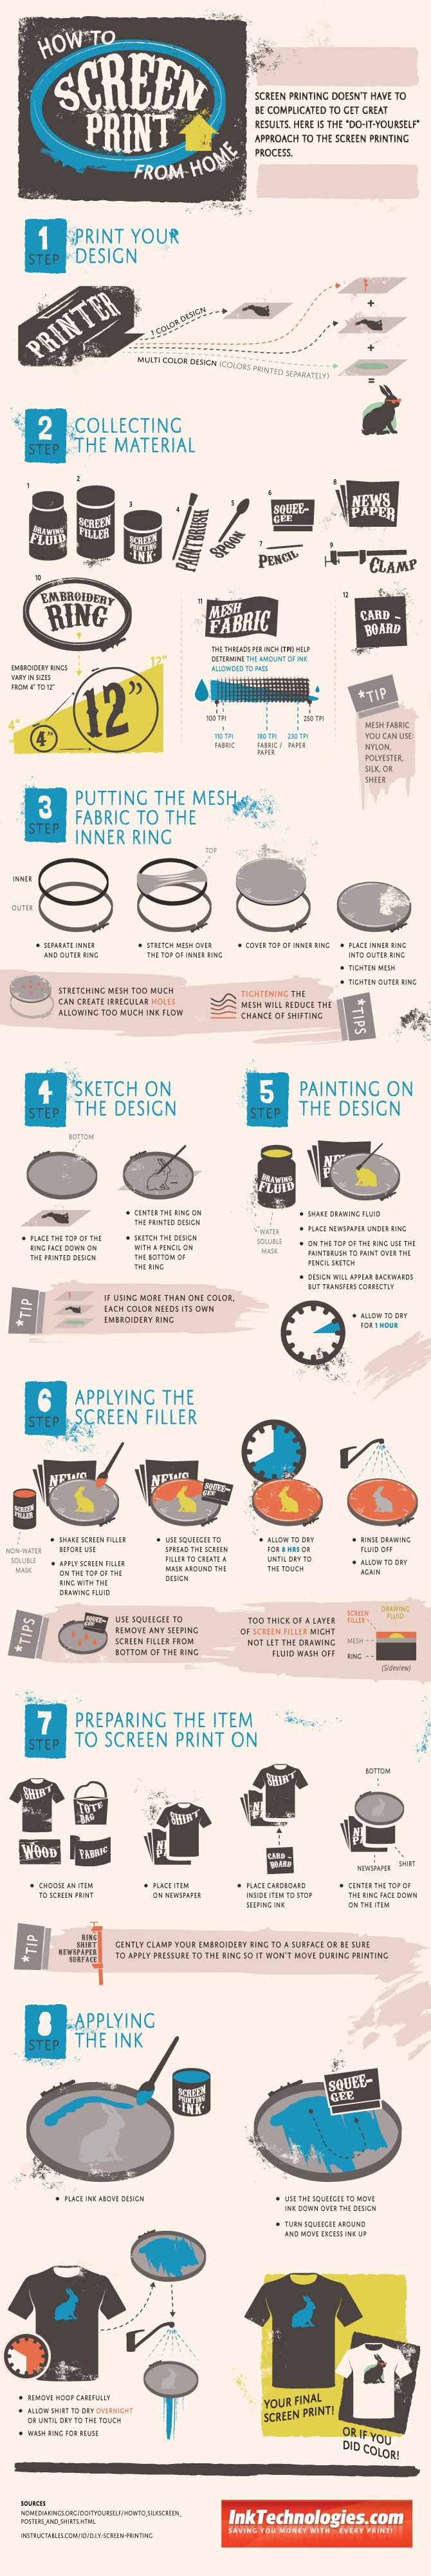 How to screen print from your home [infographic]